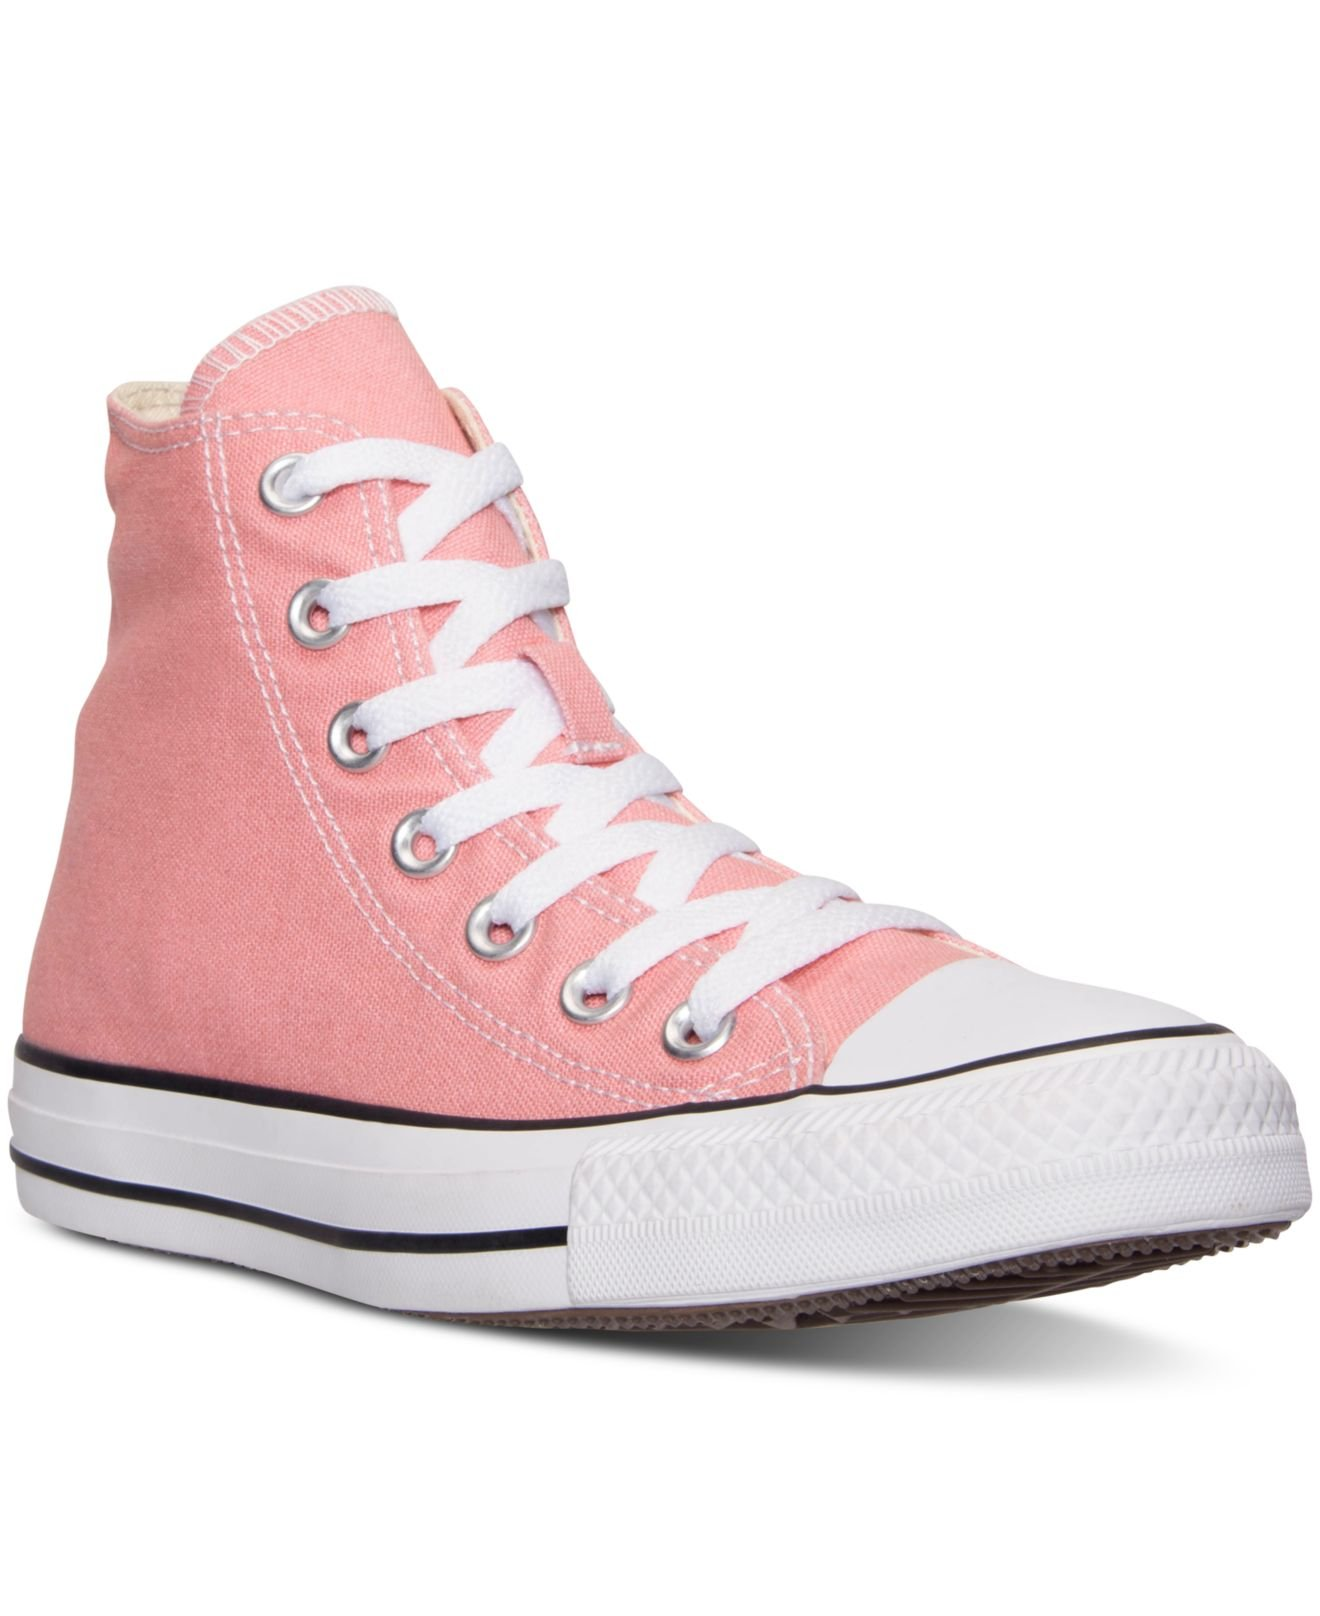 Offer expires, and the code must be redeemed by January 4, at pm PST. Offer not valid on Nike, Hurley or Jordan products; or select Custom, Chuck Taylor All Star II, Chuck Taylor All Star, Cons, Jack Purcell, Limited Edition, One Star and DC Comics styles. Converse reserves the right to cancel or modify this offer at any time.